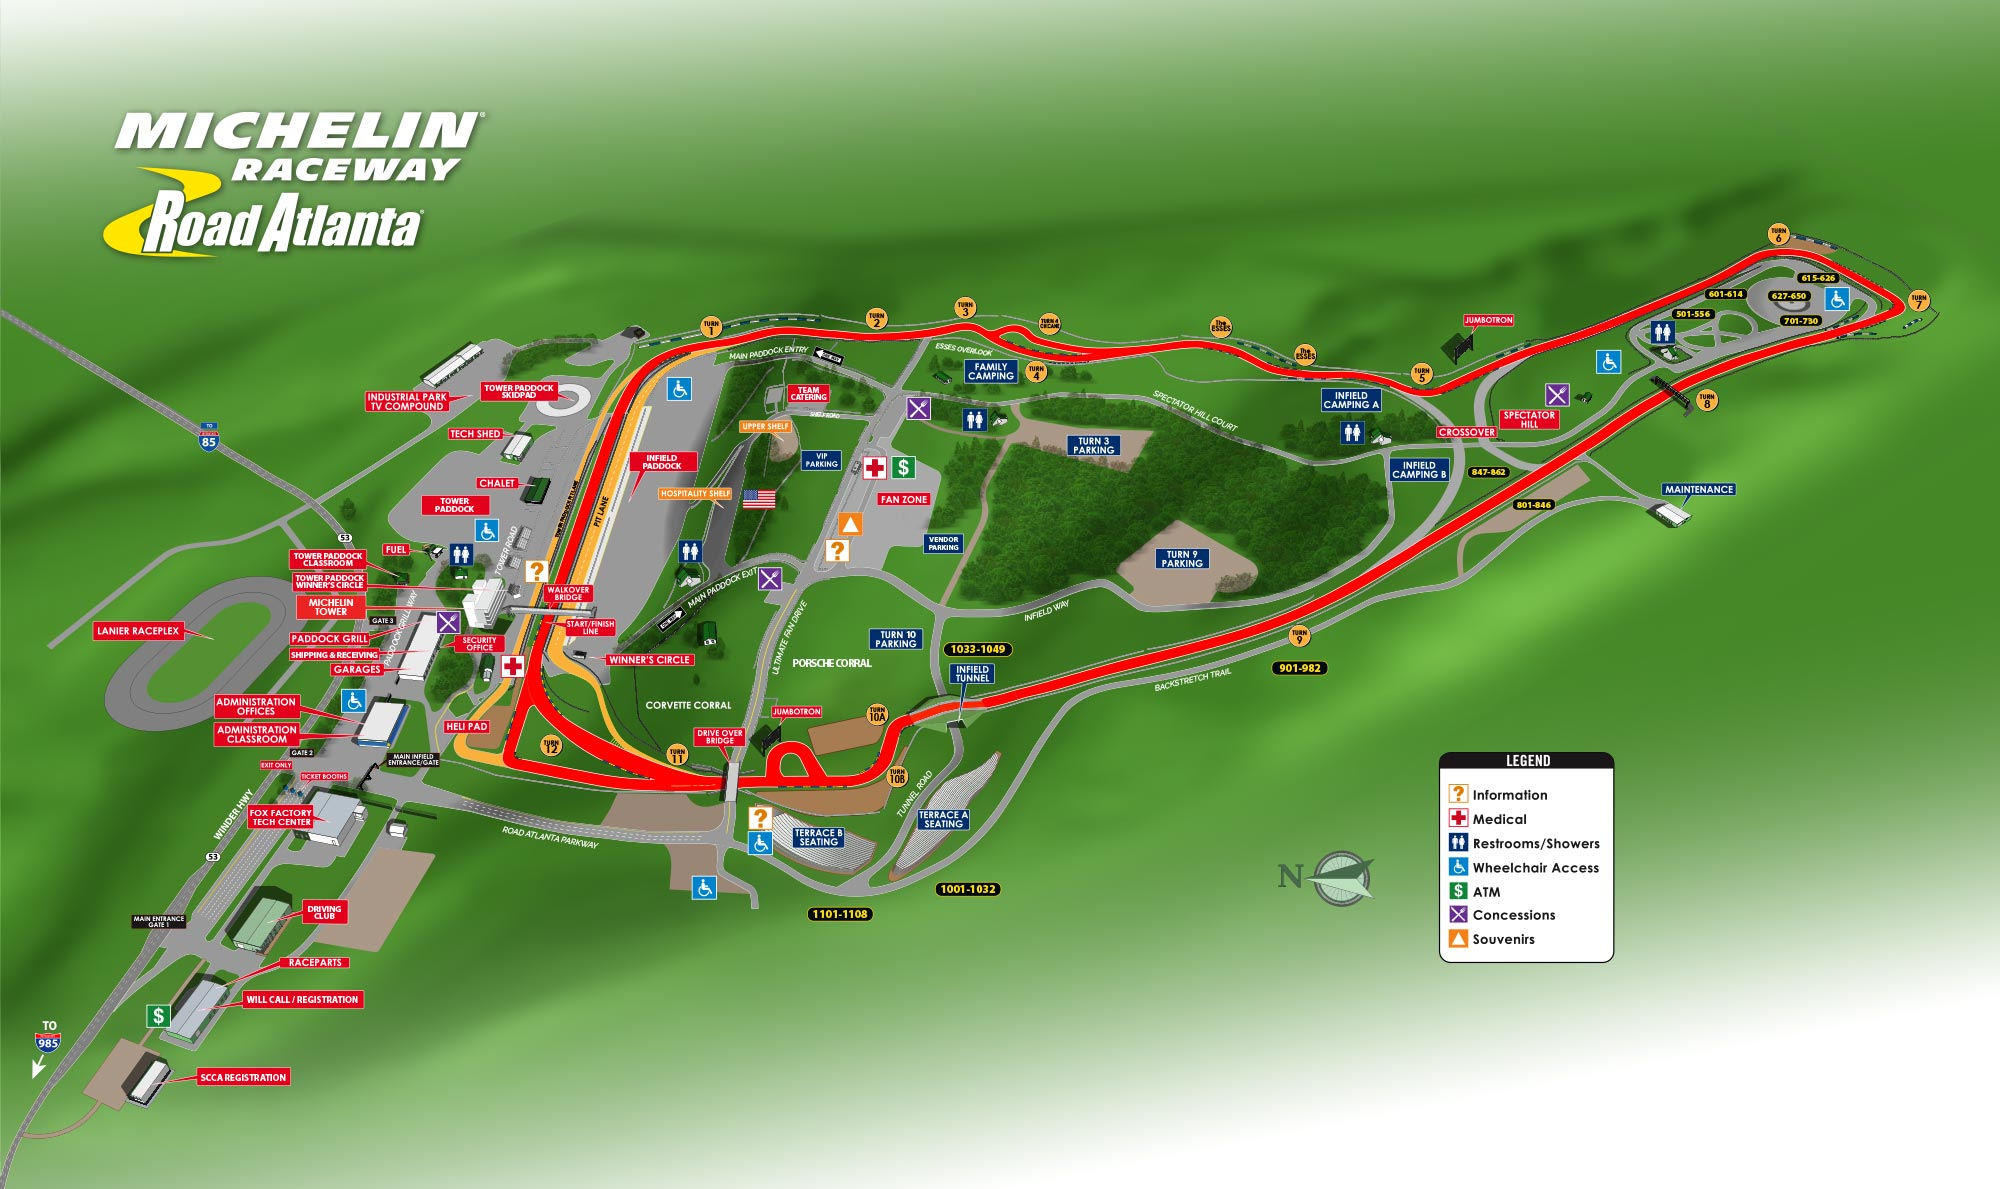 Michelin Raceway Road Atlanta Track Map